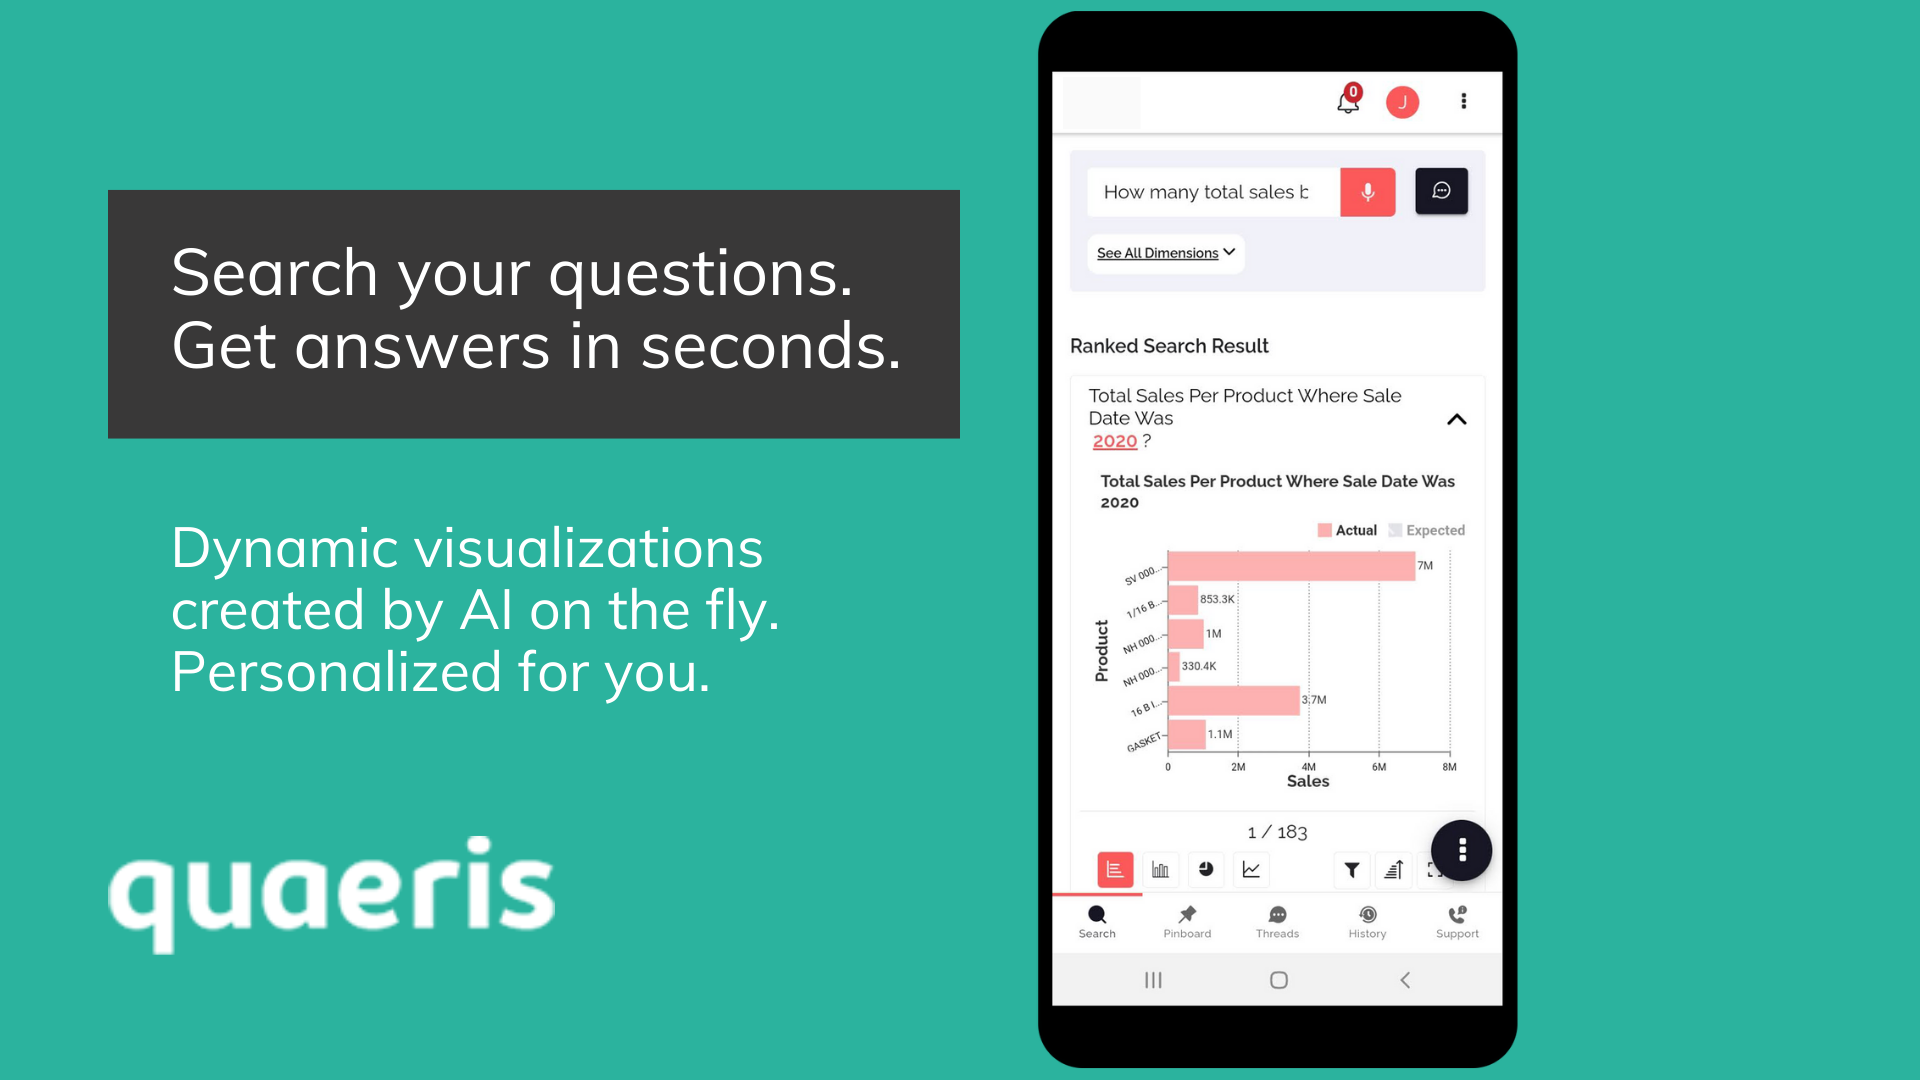 Search your questions. Get answers in seconds.